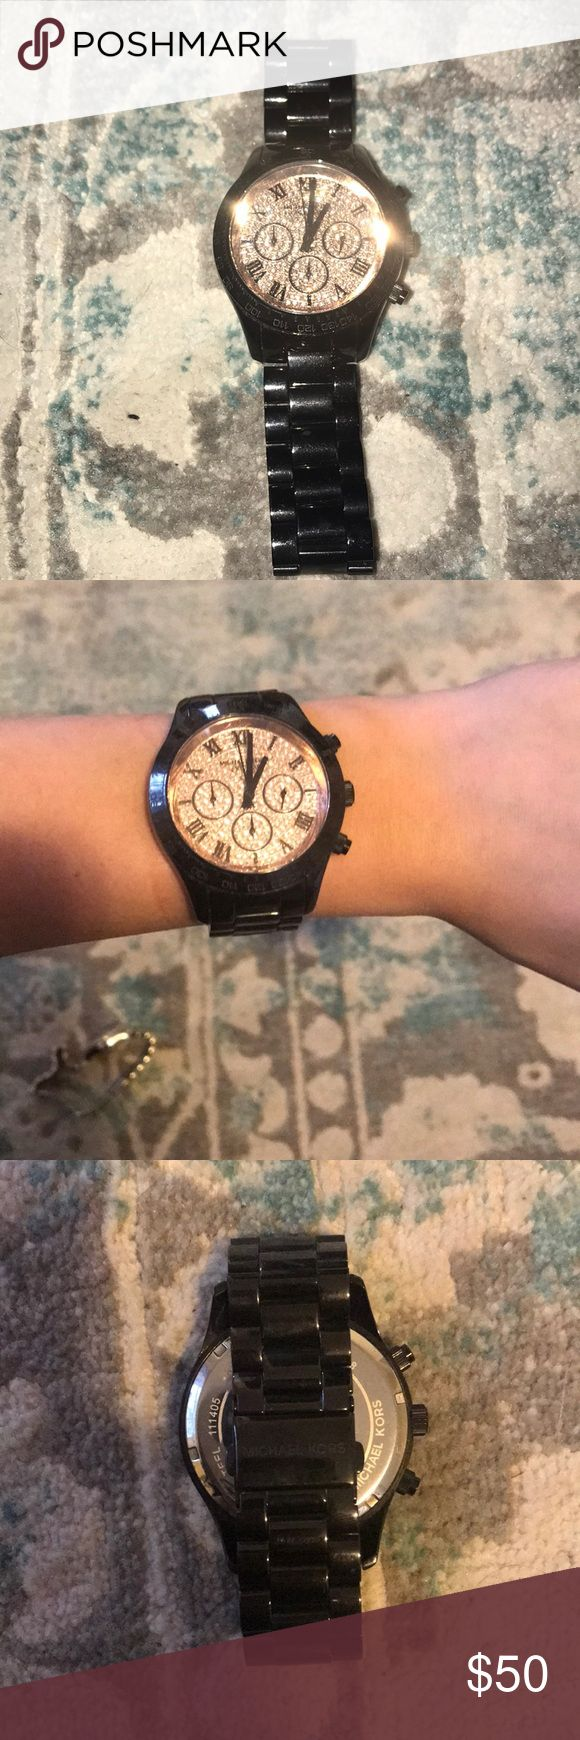 Black Michael Kors watch w Rose Gold Diamond Face Black Michael Kors watch with Rose Gold Diamond Face! Perfect condition. I do have a small wrist but there is wiggle room. If interested I will try to provide better/ exact measurements of my wrist. KORS Michael Kors Accessories Watches